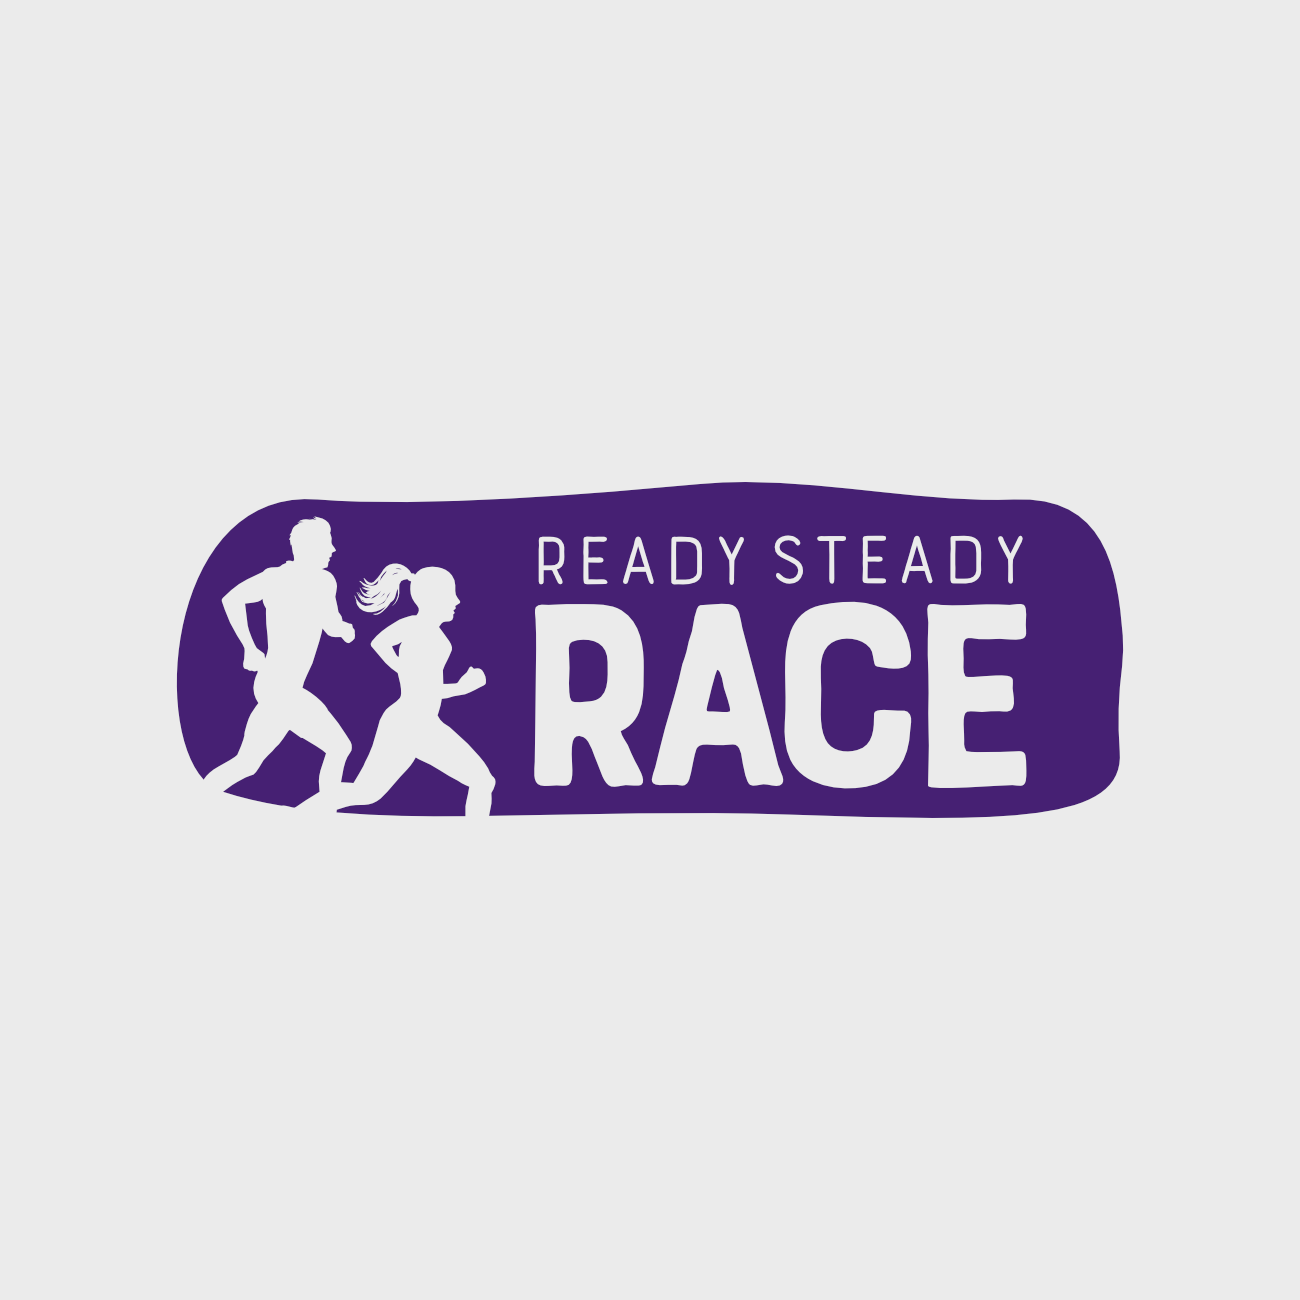 Ready Steady Race logo for running events